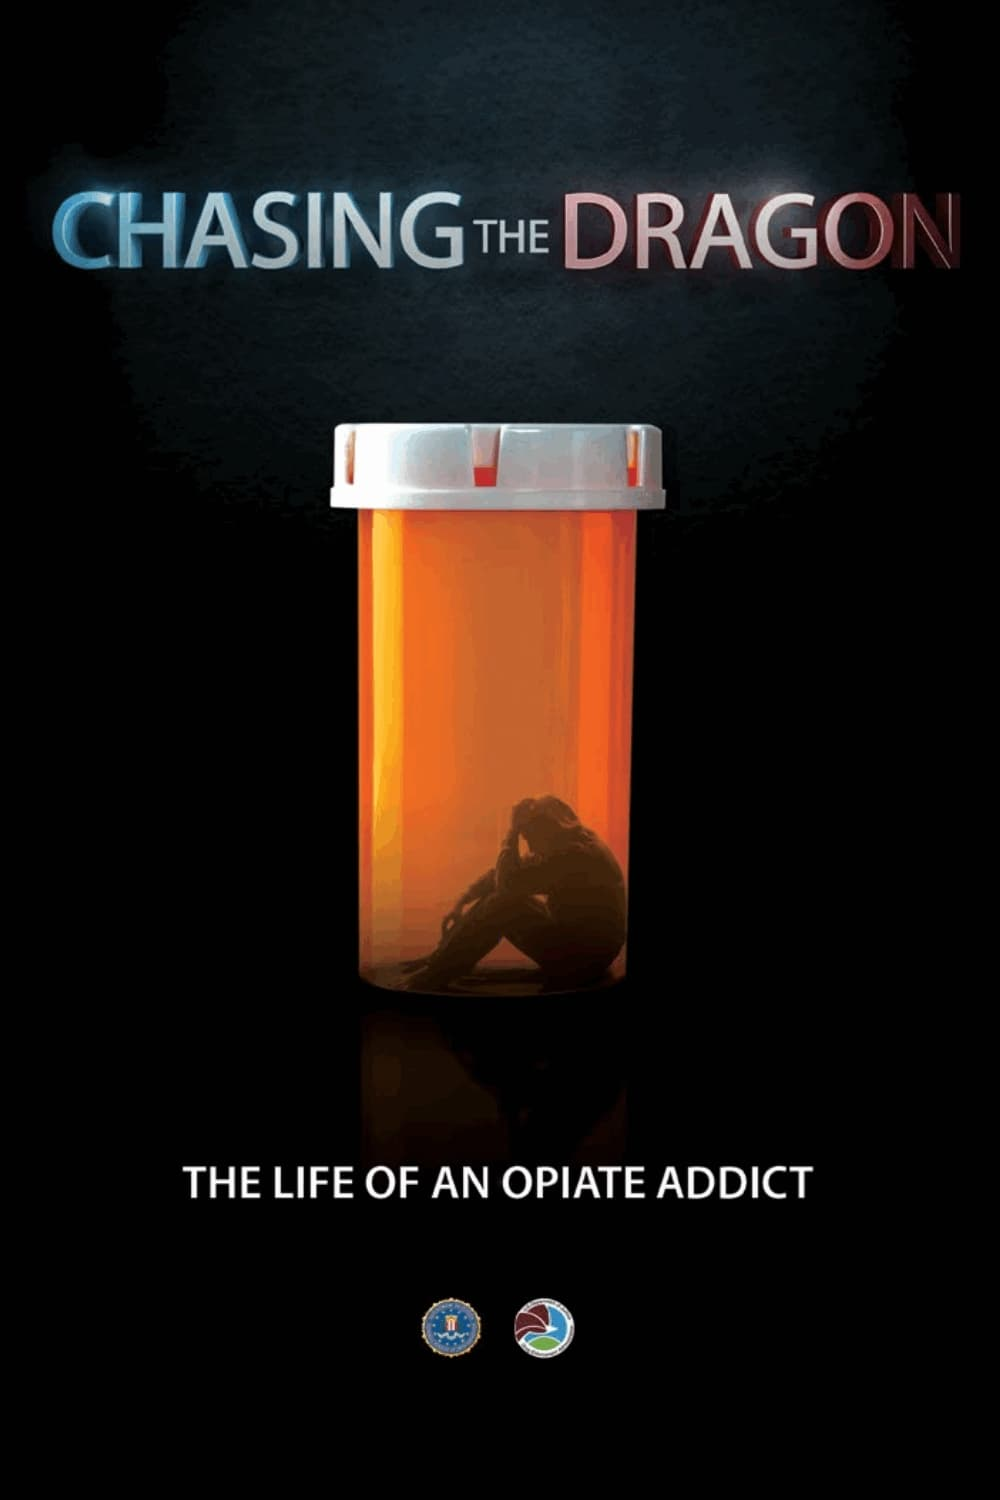 Chasing the Dragon (2016)